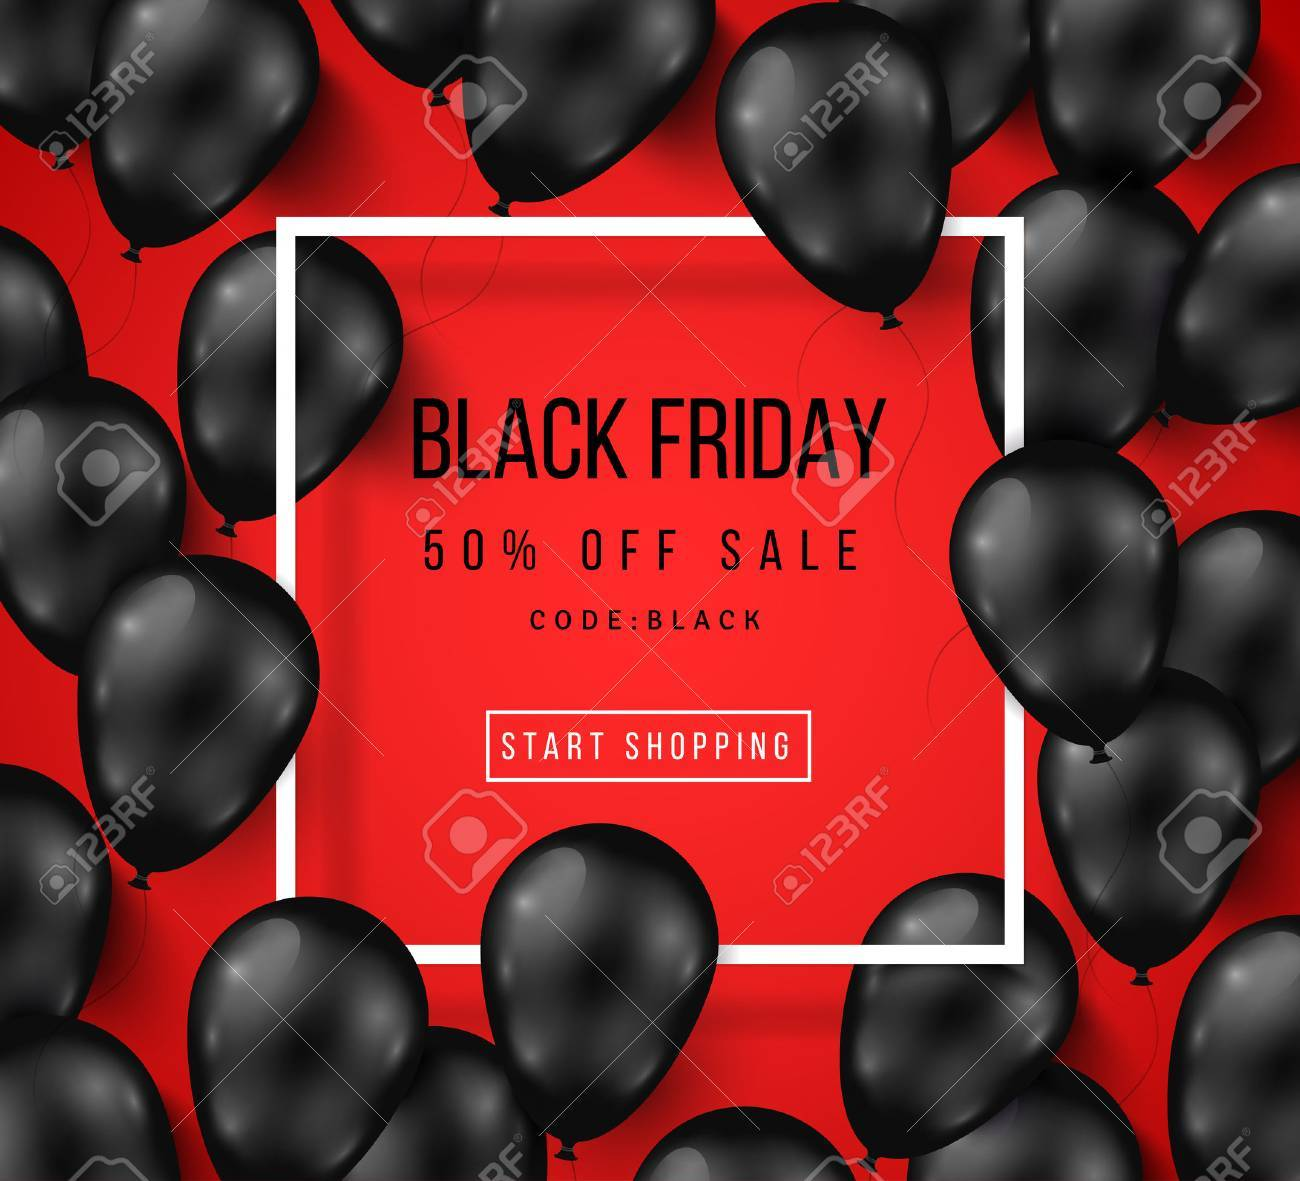 Black Friday Sale Poster with Shiny Balloons on Red Background with Square Frame. illustration. - 63127014